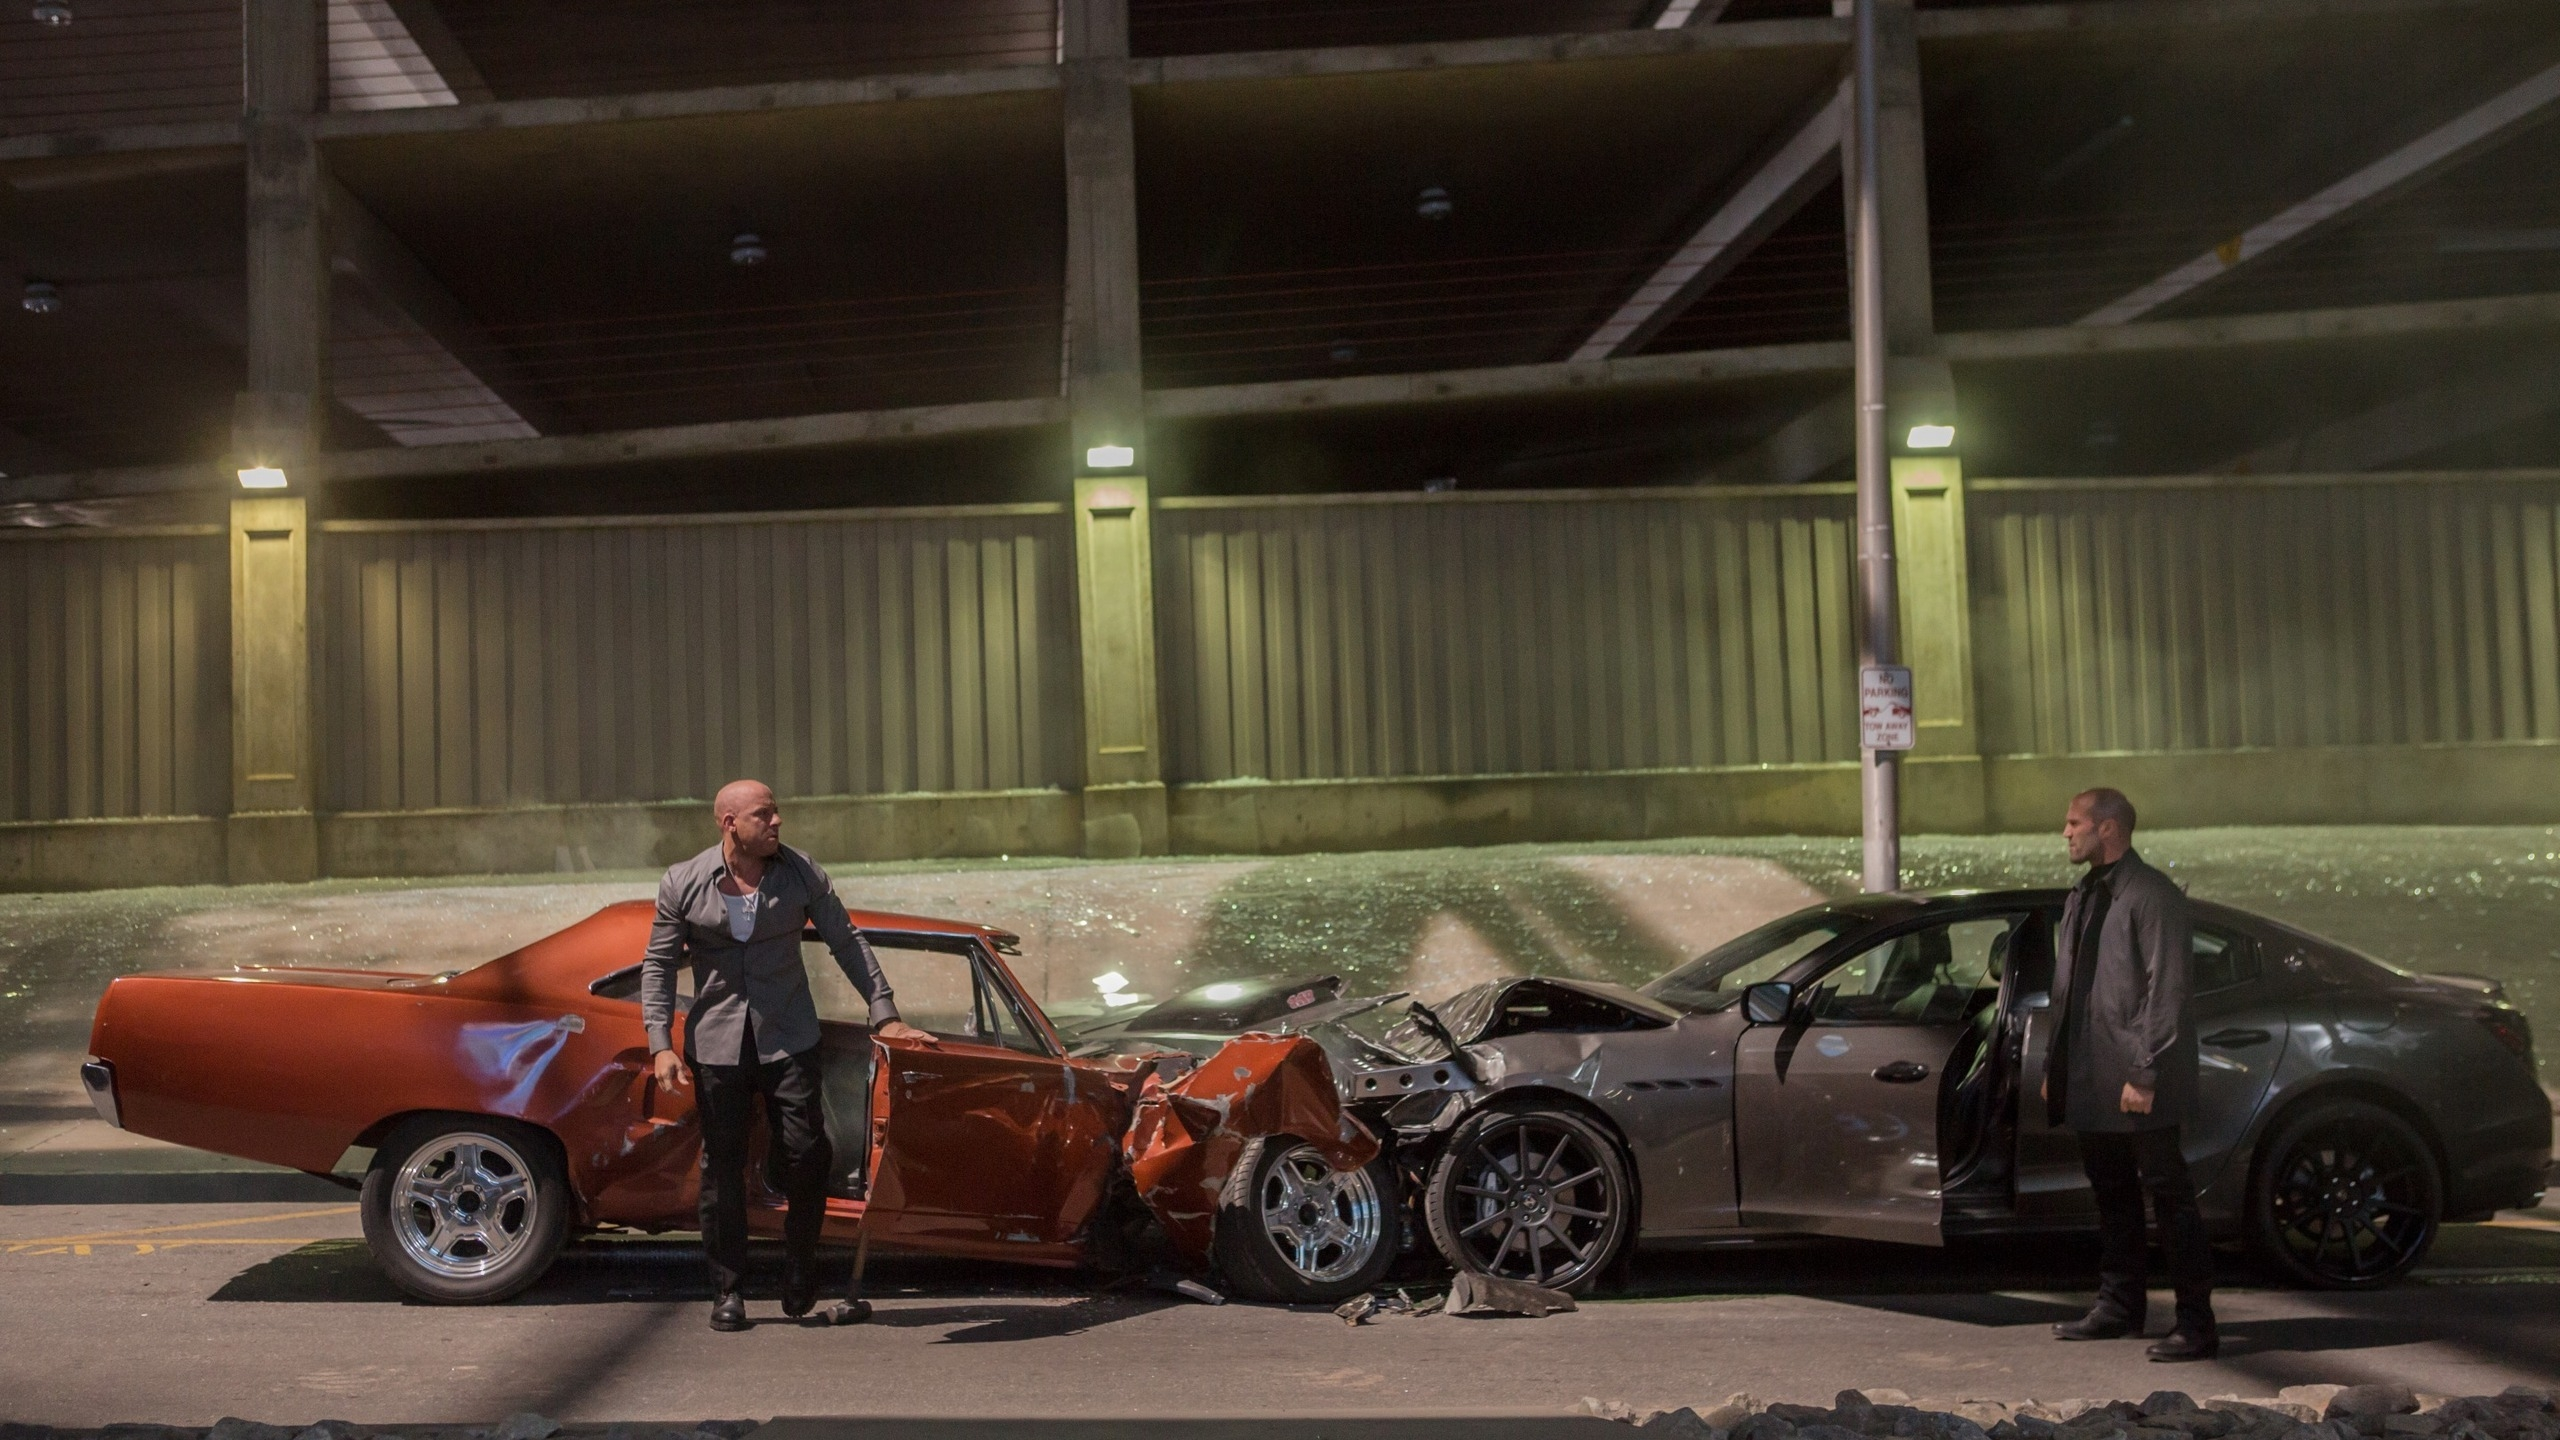 Fast And Furious 7 Movie Scene for 2560x1440 HDTV resolution